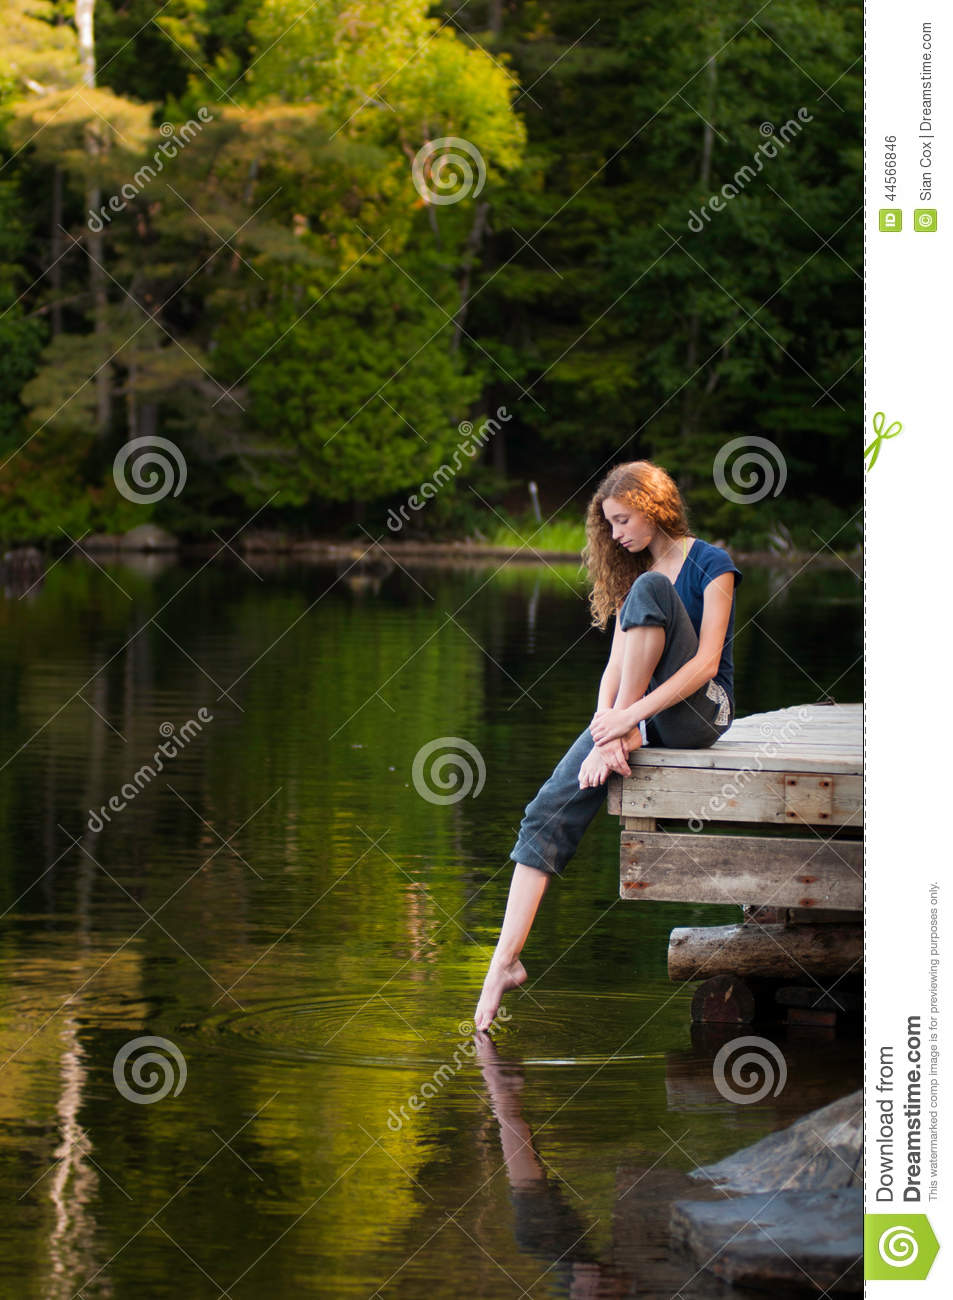 Girl sitting alone on dock by lake royalty free stock - Cartoon girl sitting alone ...